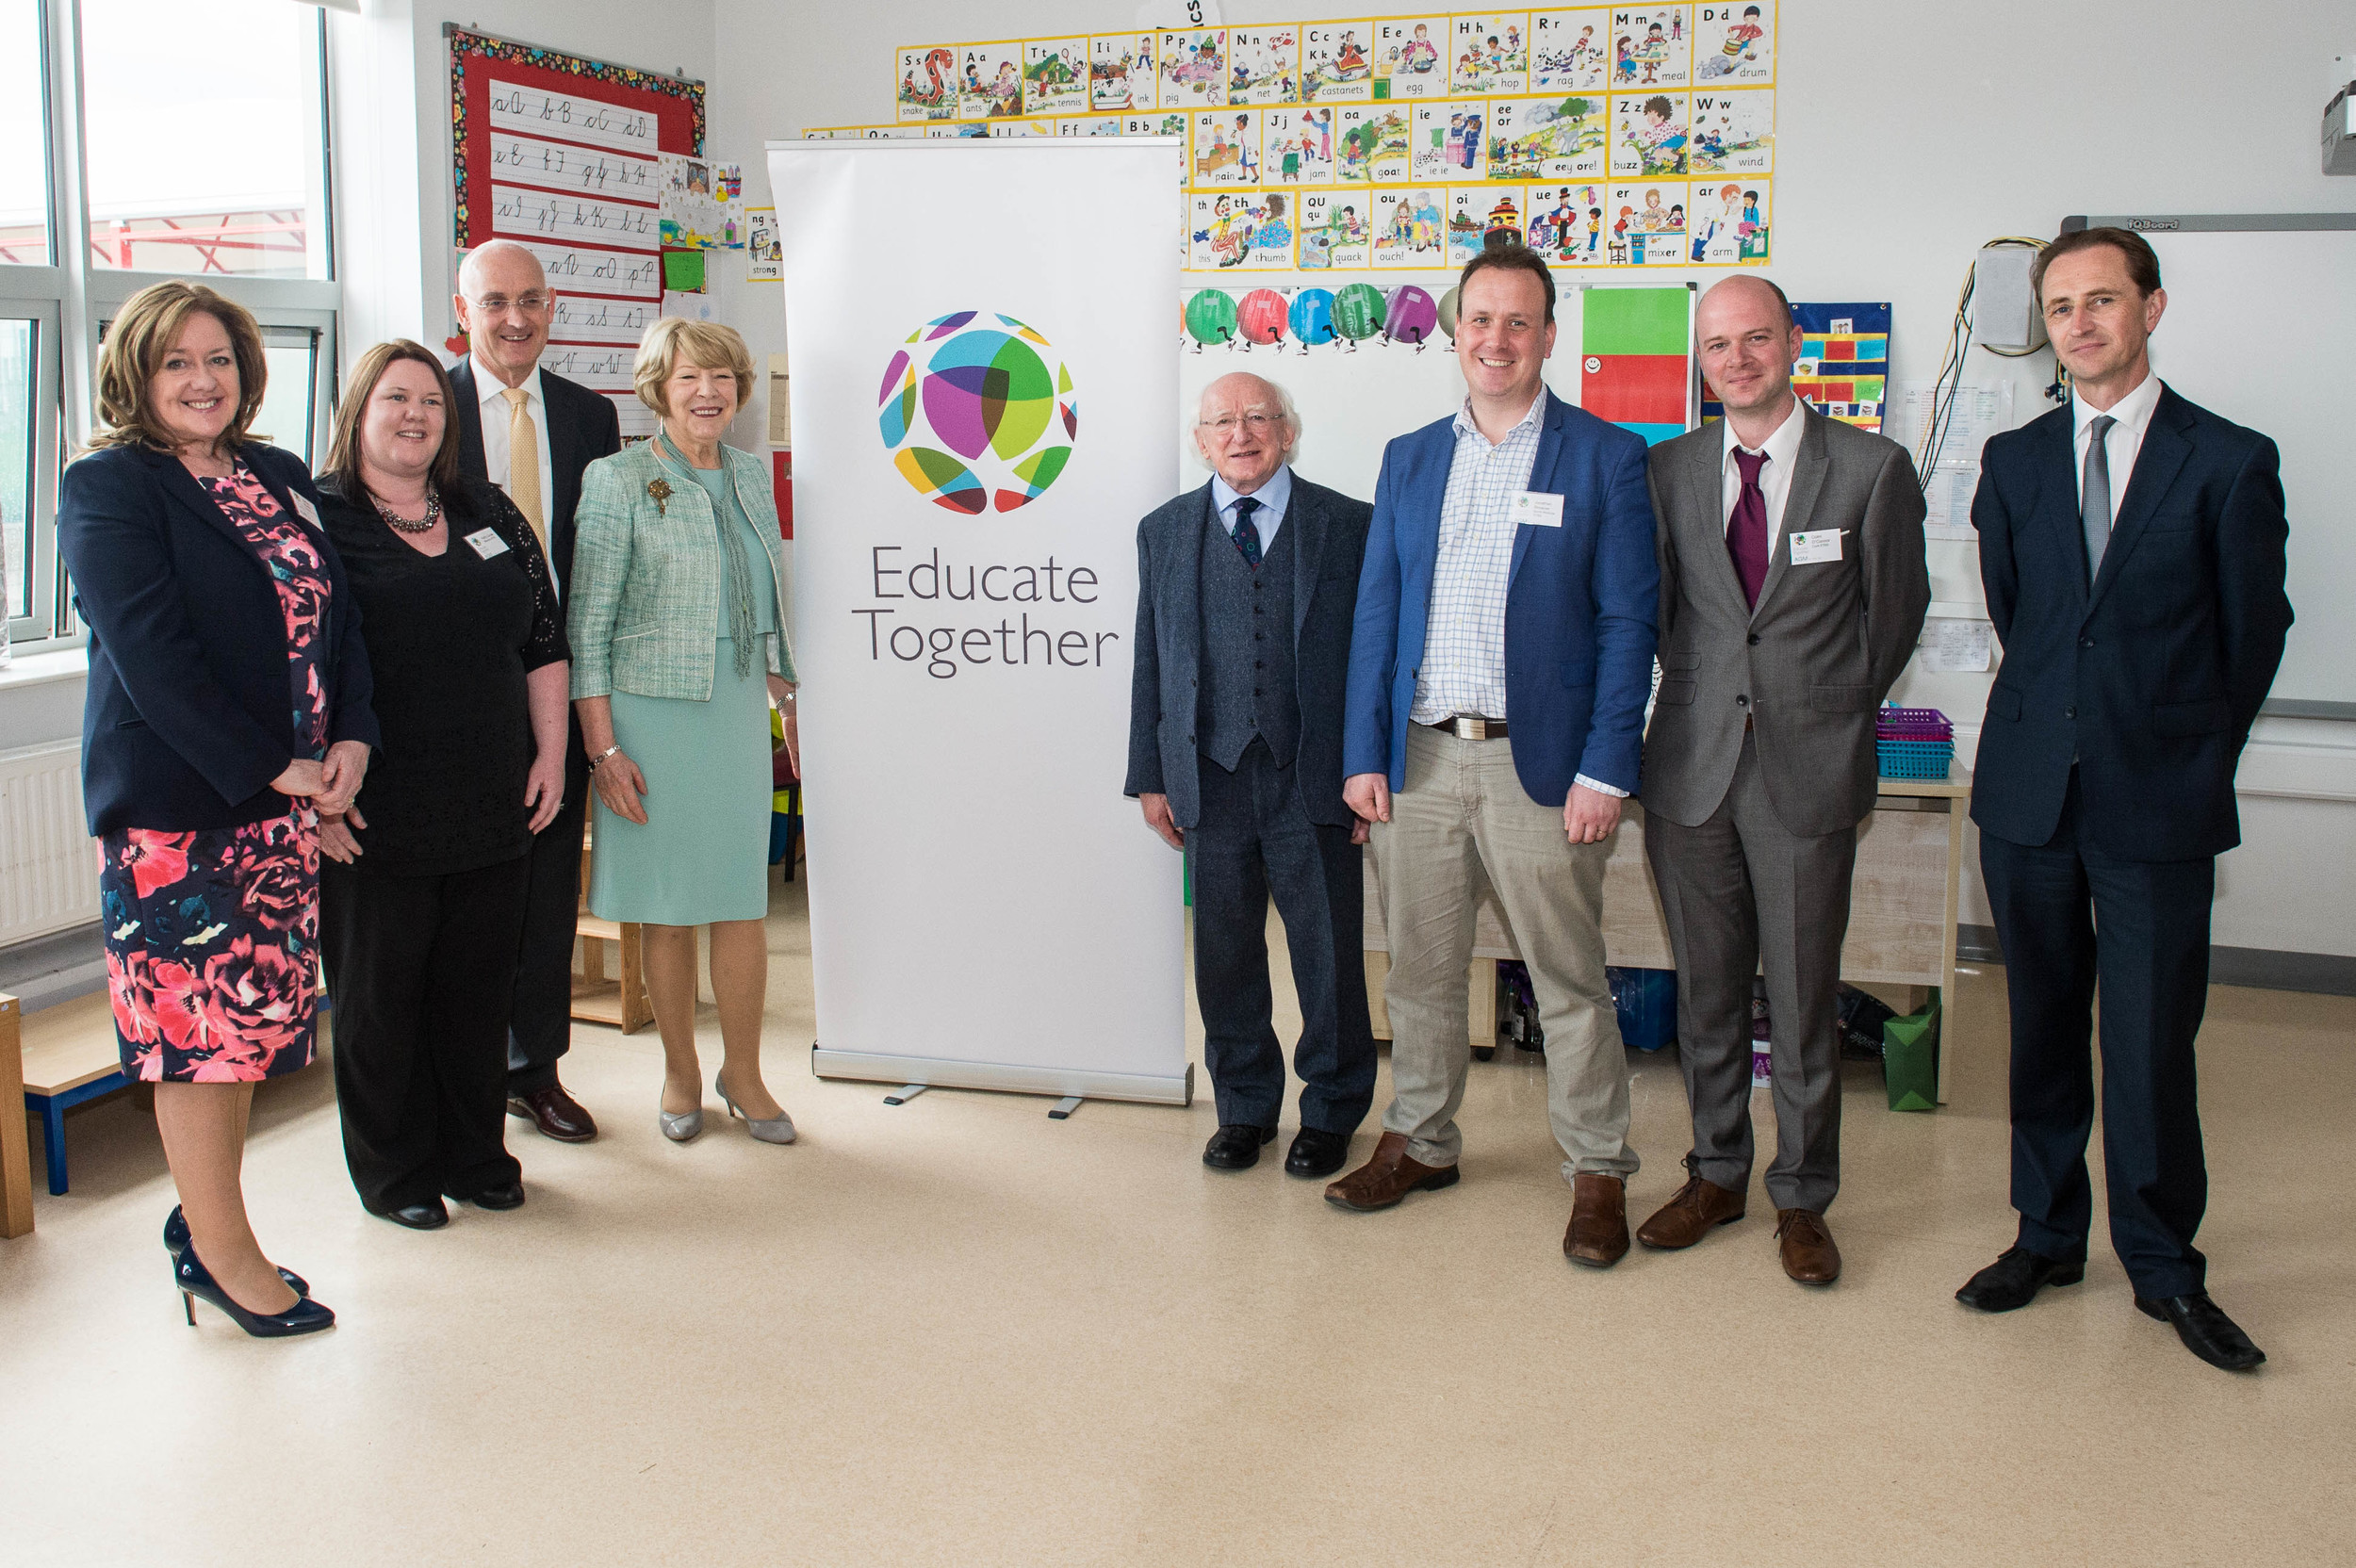 Colm with President Michael D. Higgins, his wife Sabina and the principals from Stepaside, Bremore and North Wicklow Educate Together Secondary Schools - all opening in 2016